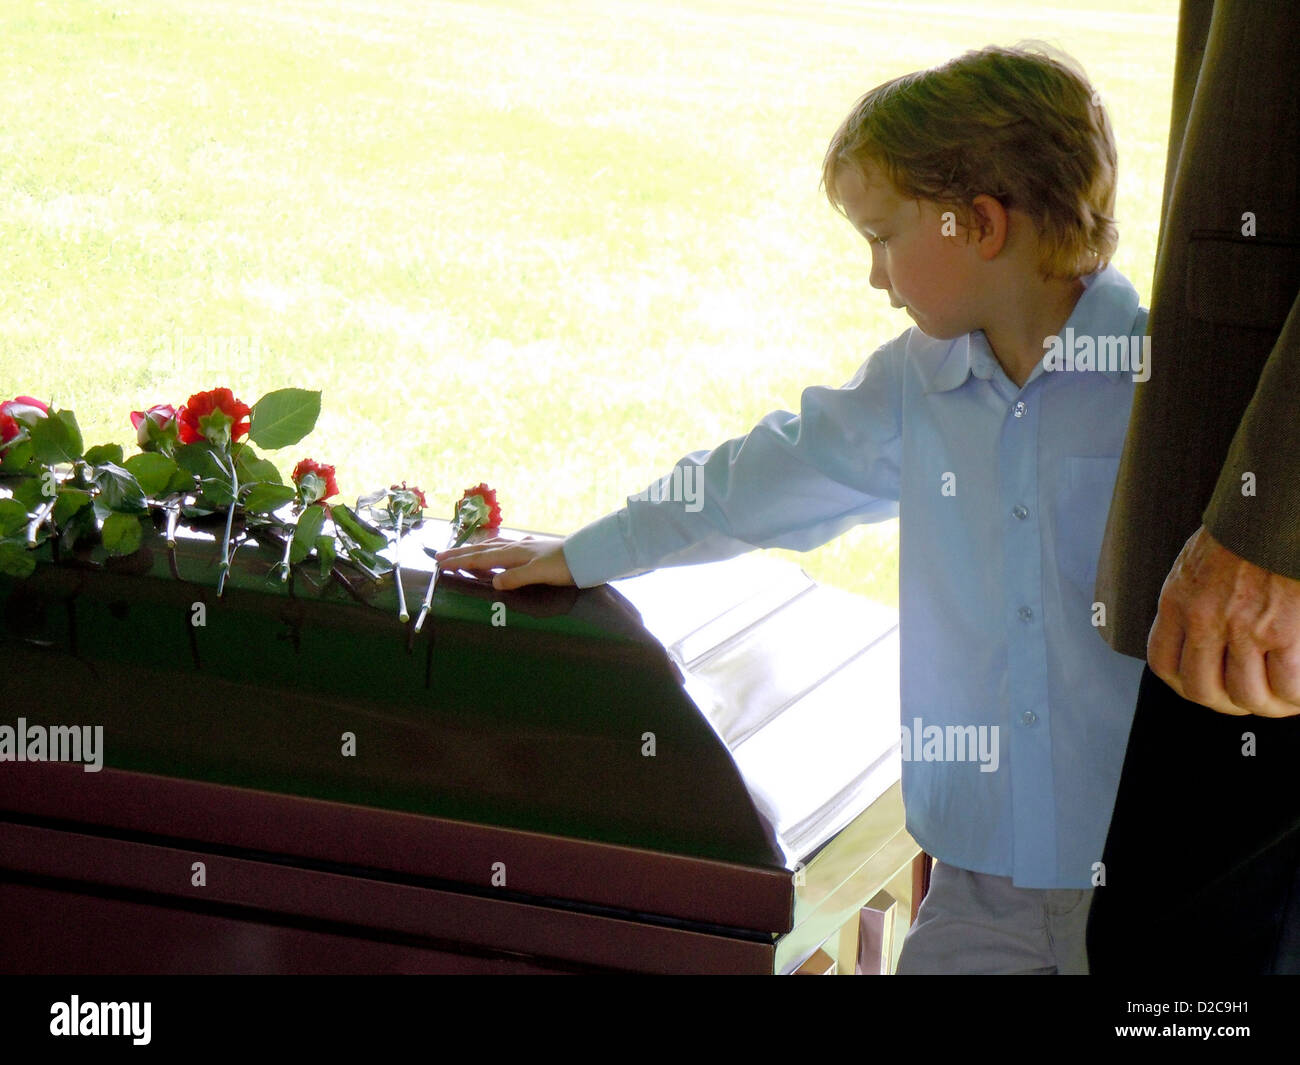 6-Year-Old Boy At Funeral - Stock Image